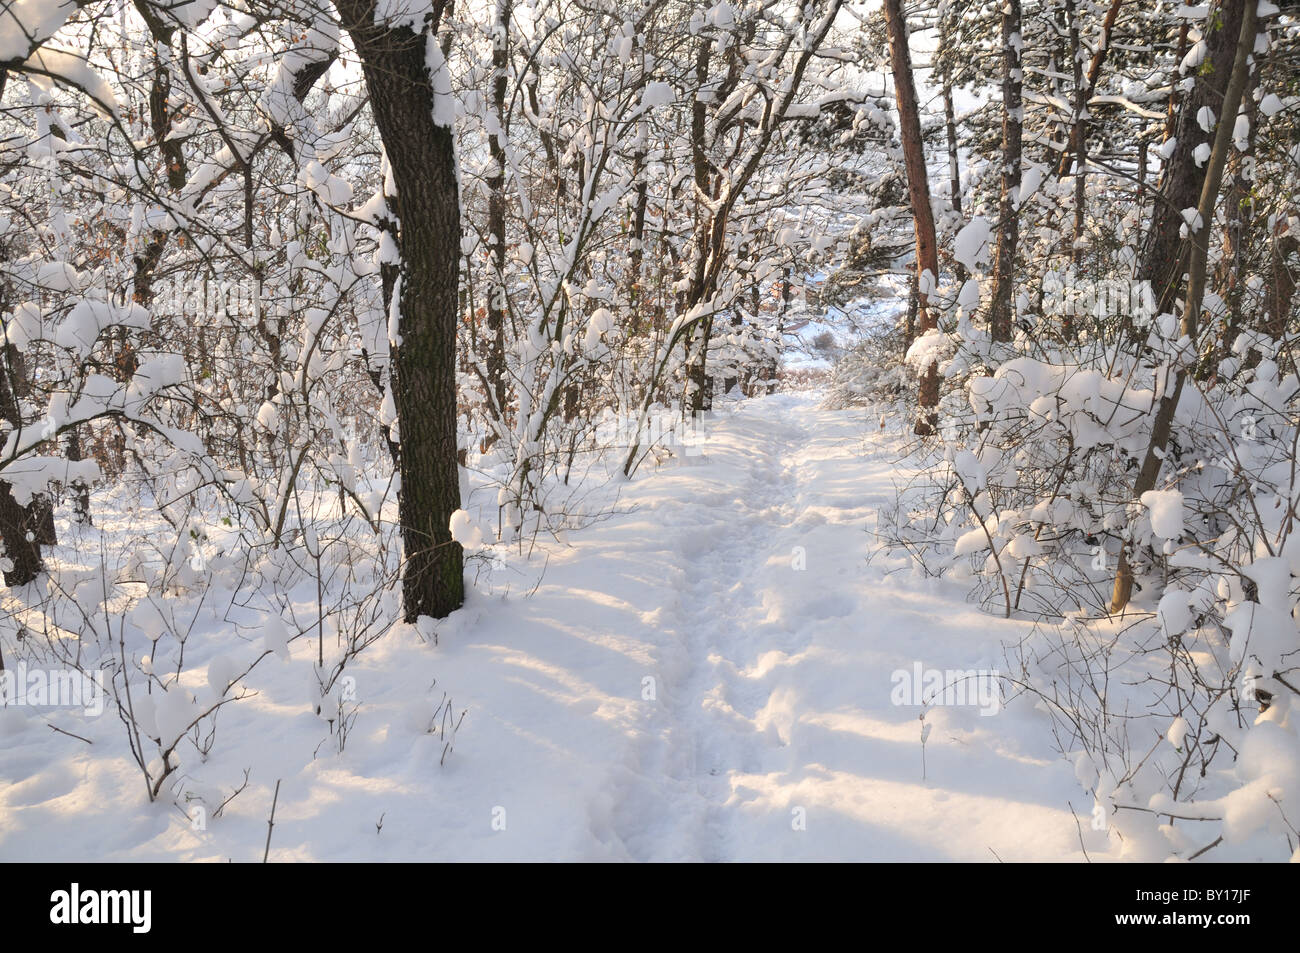 Forest in winter with deep snow all around Stock Photo